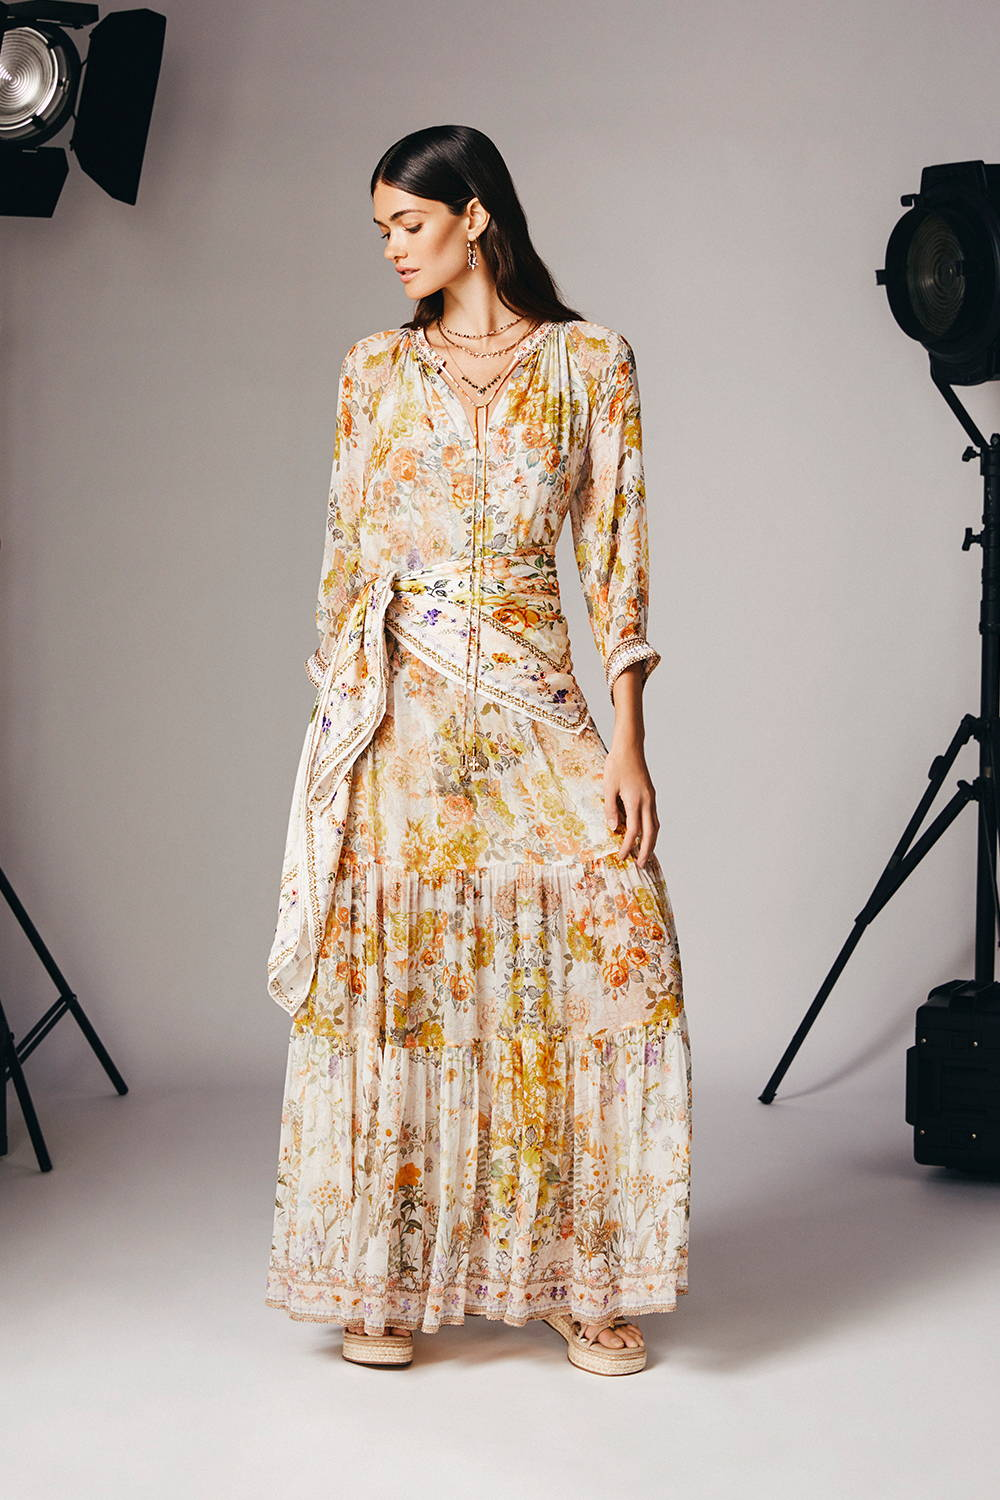 LONG GATHERED PANEL DRESS IN THE HILLS OF TUSCANY